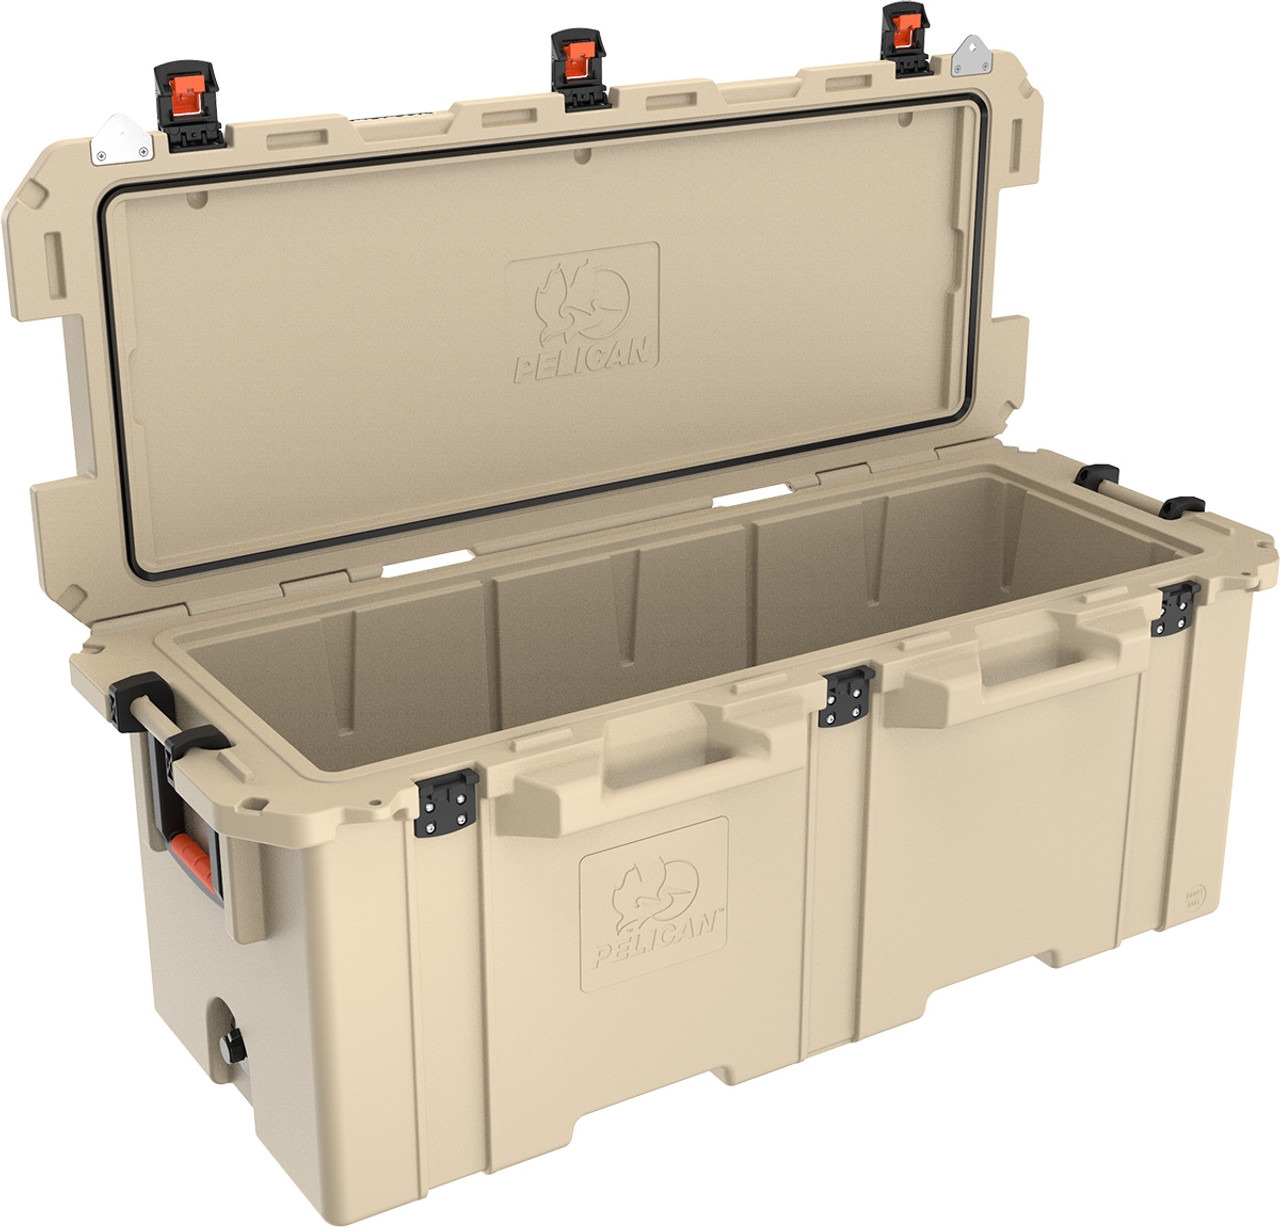 Pelican 250 Quart Cooler with Dual Handles and Press and Pull Latches, Available in Tan or White, 62x29x27, 111 lbs